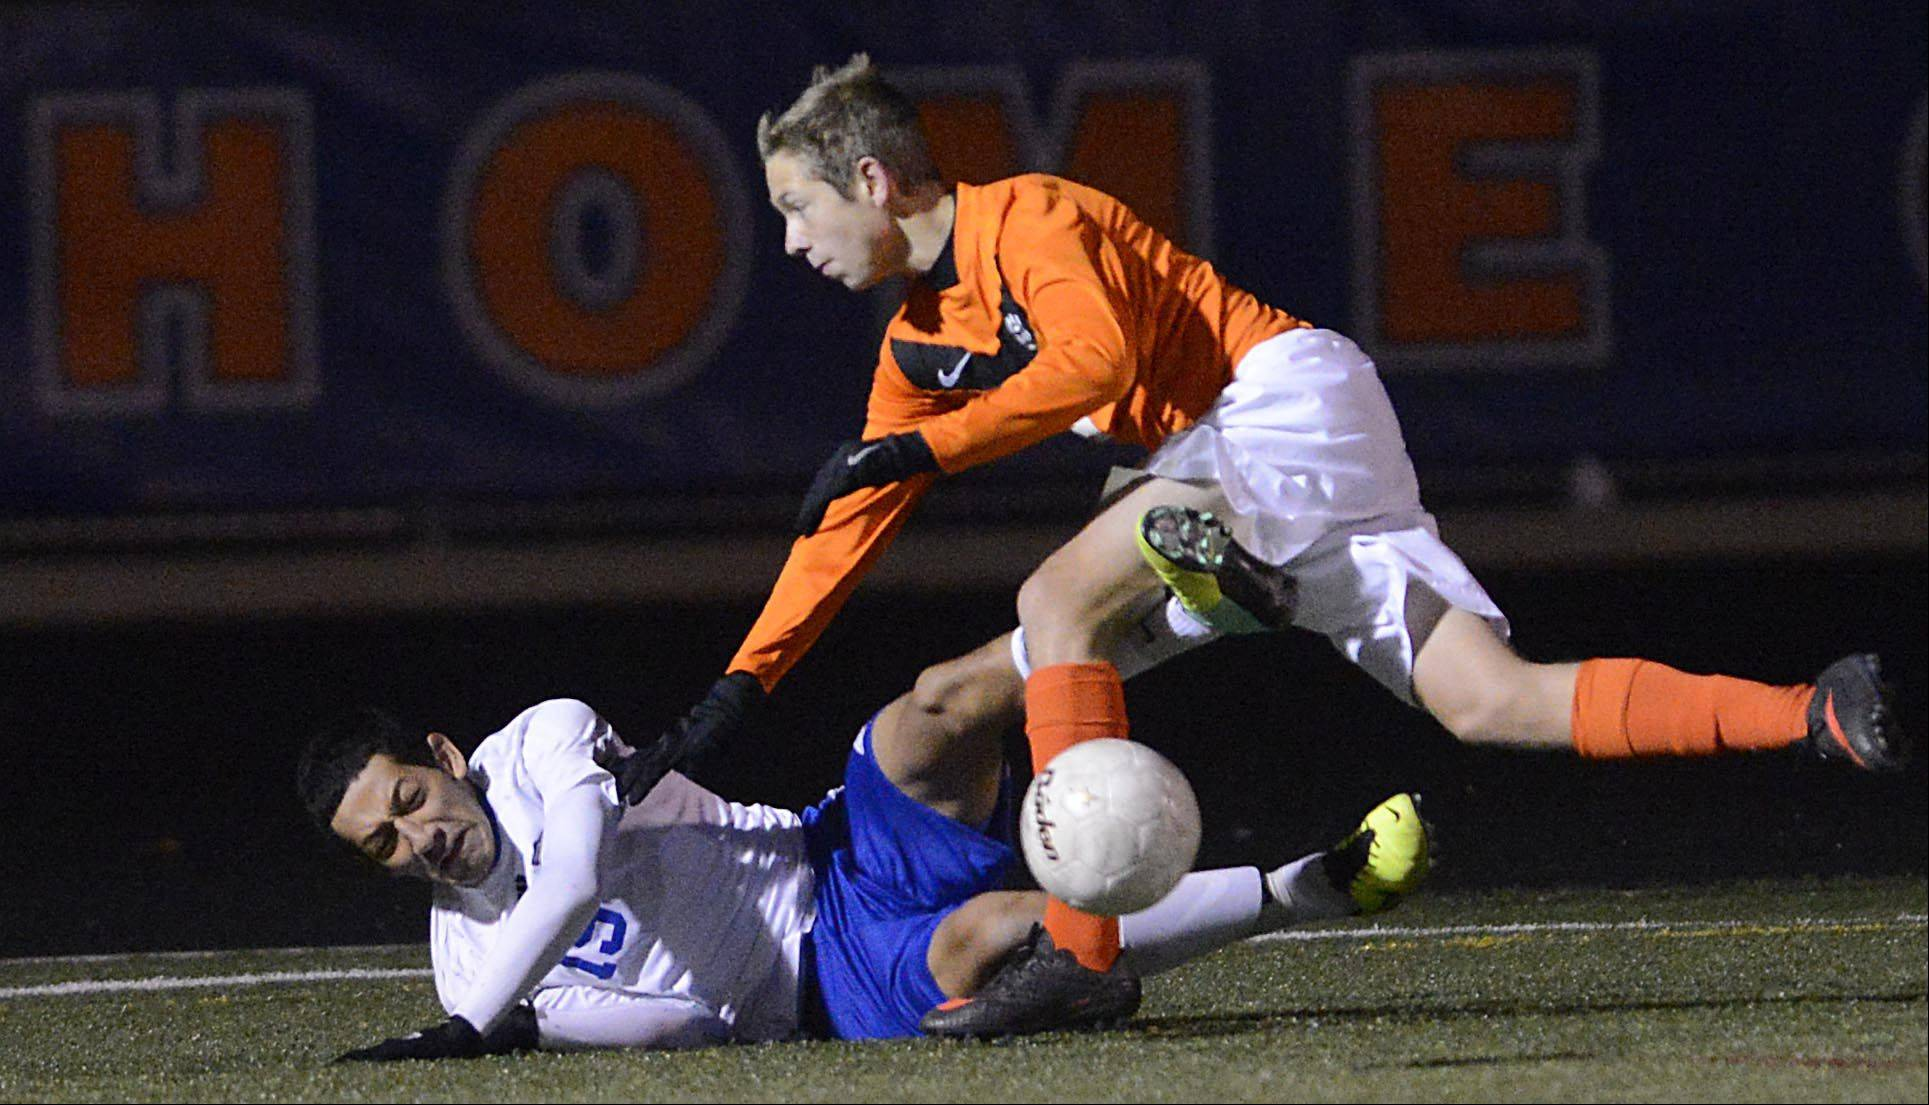 John Starks/jstarks@dailyherald.comWheeling's Michael Hernandez falls as he tangles with Edwardsville's Tommy Giacobbe during Saturday's match.